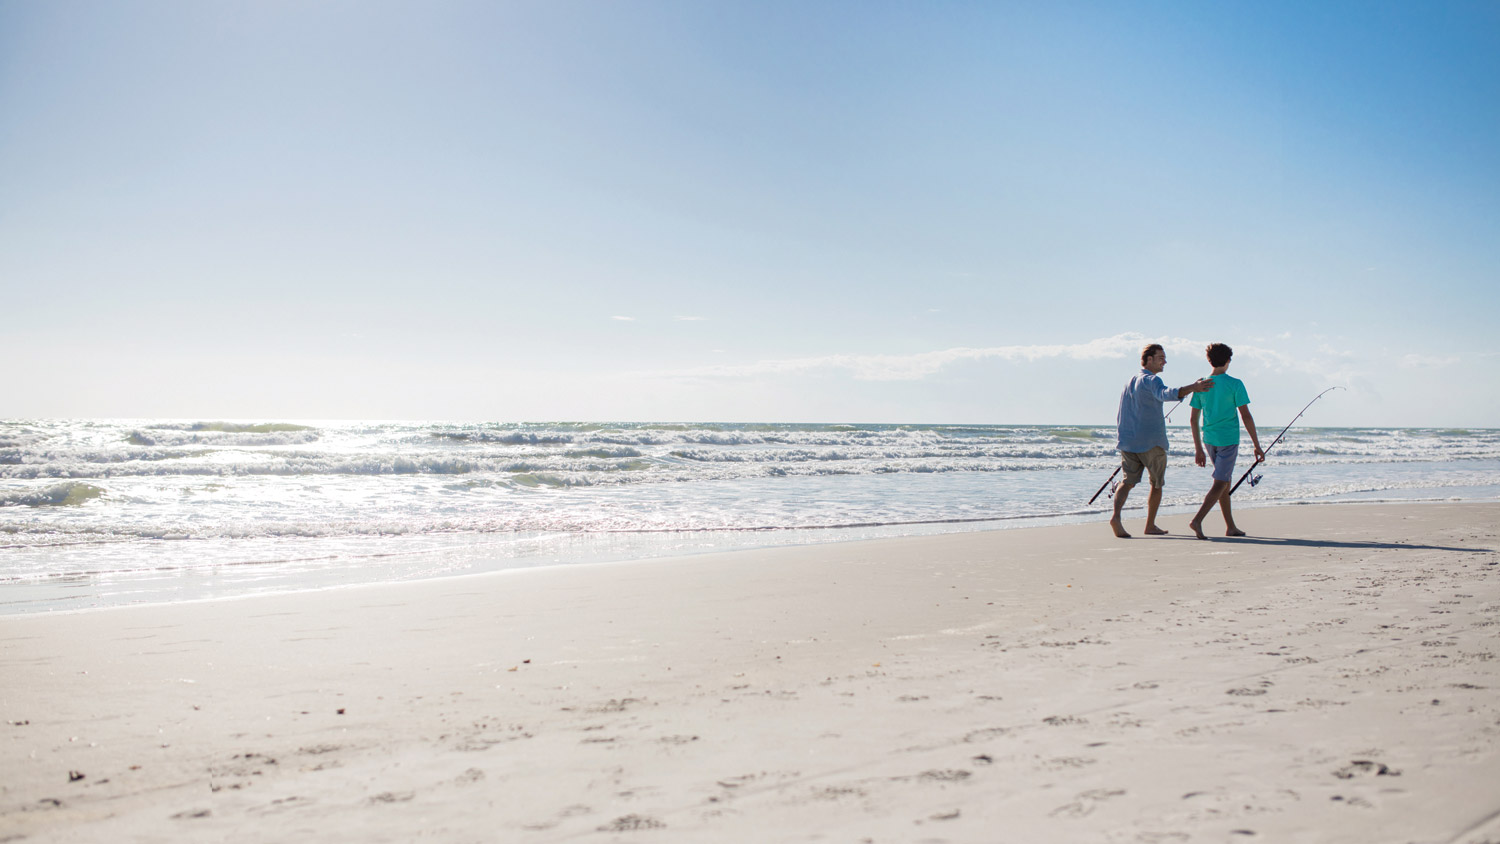 Survey says: Florida is popular for family vacations.